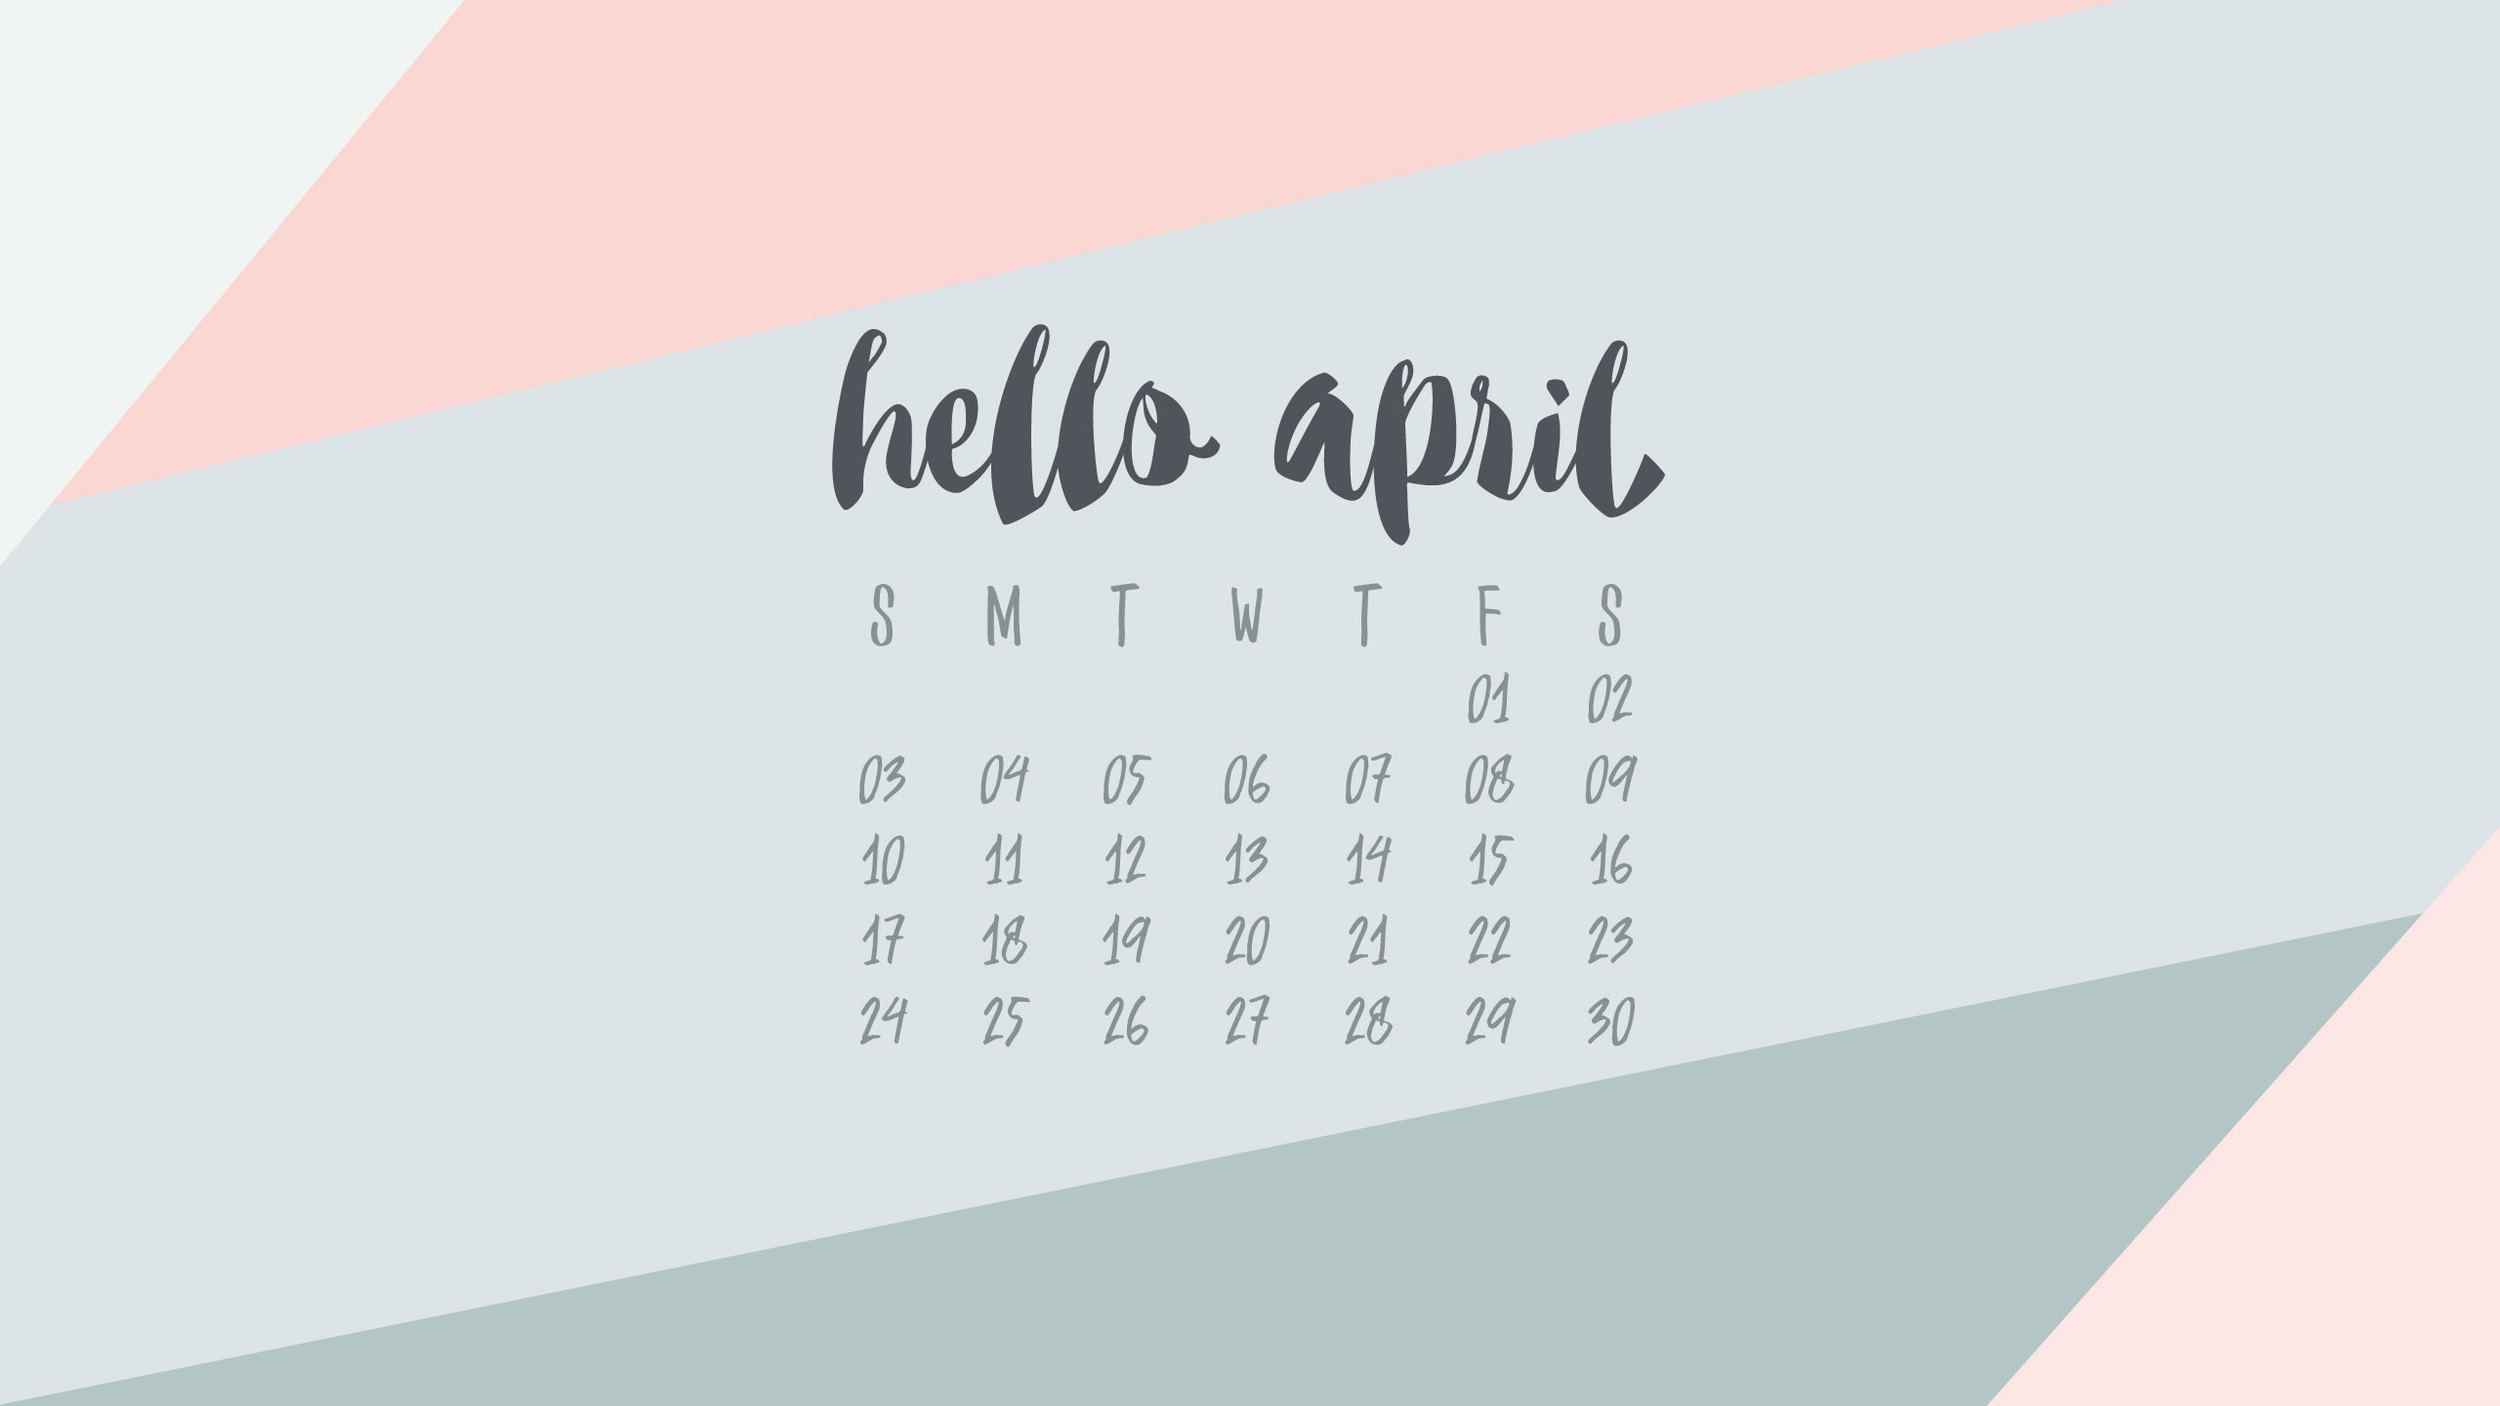 UpperCase Designs April Desktop Calendar Wallpaper